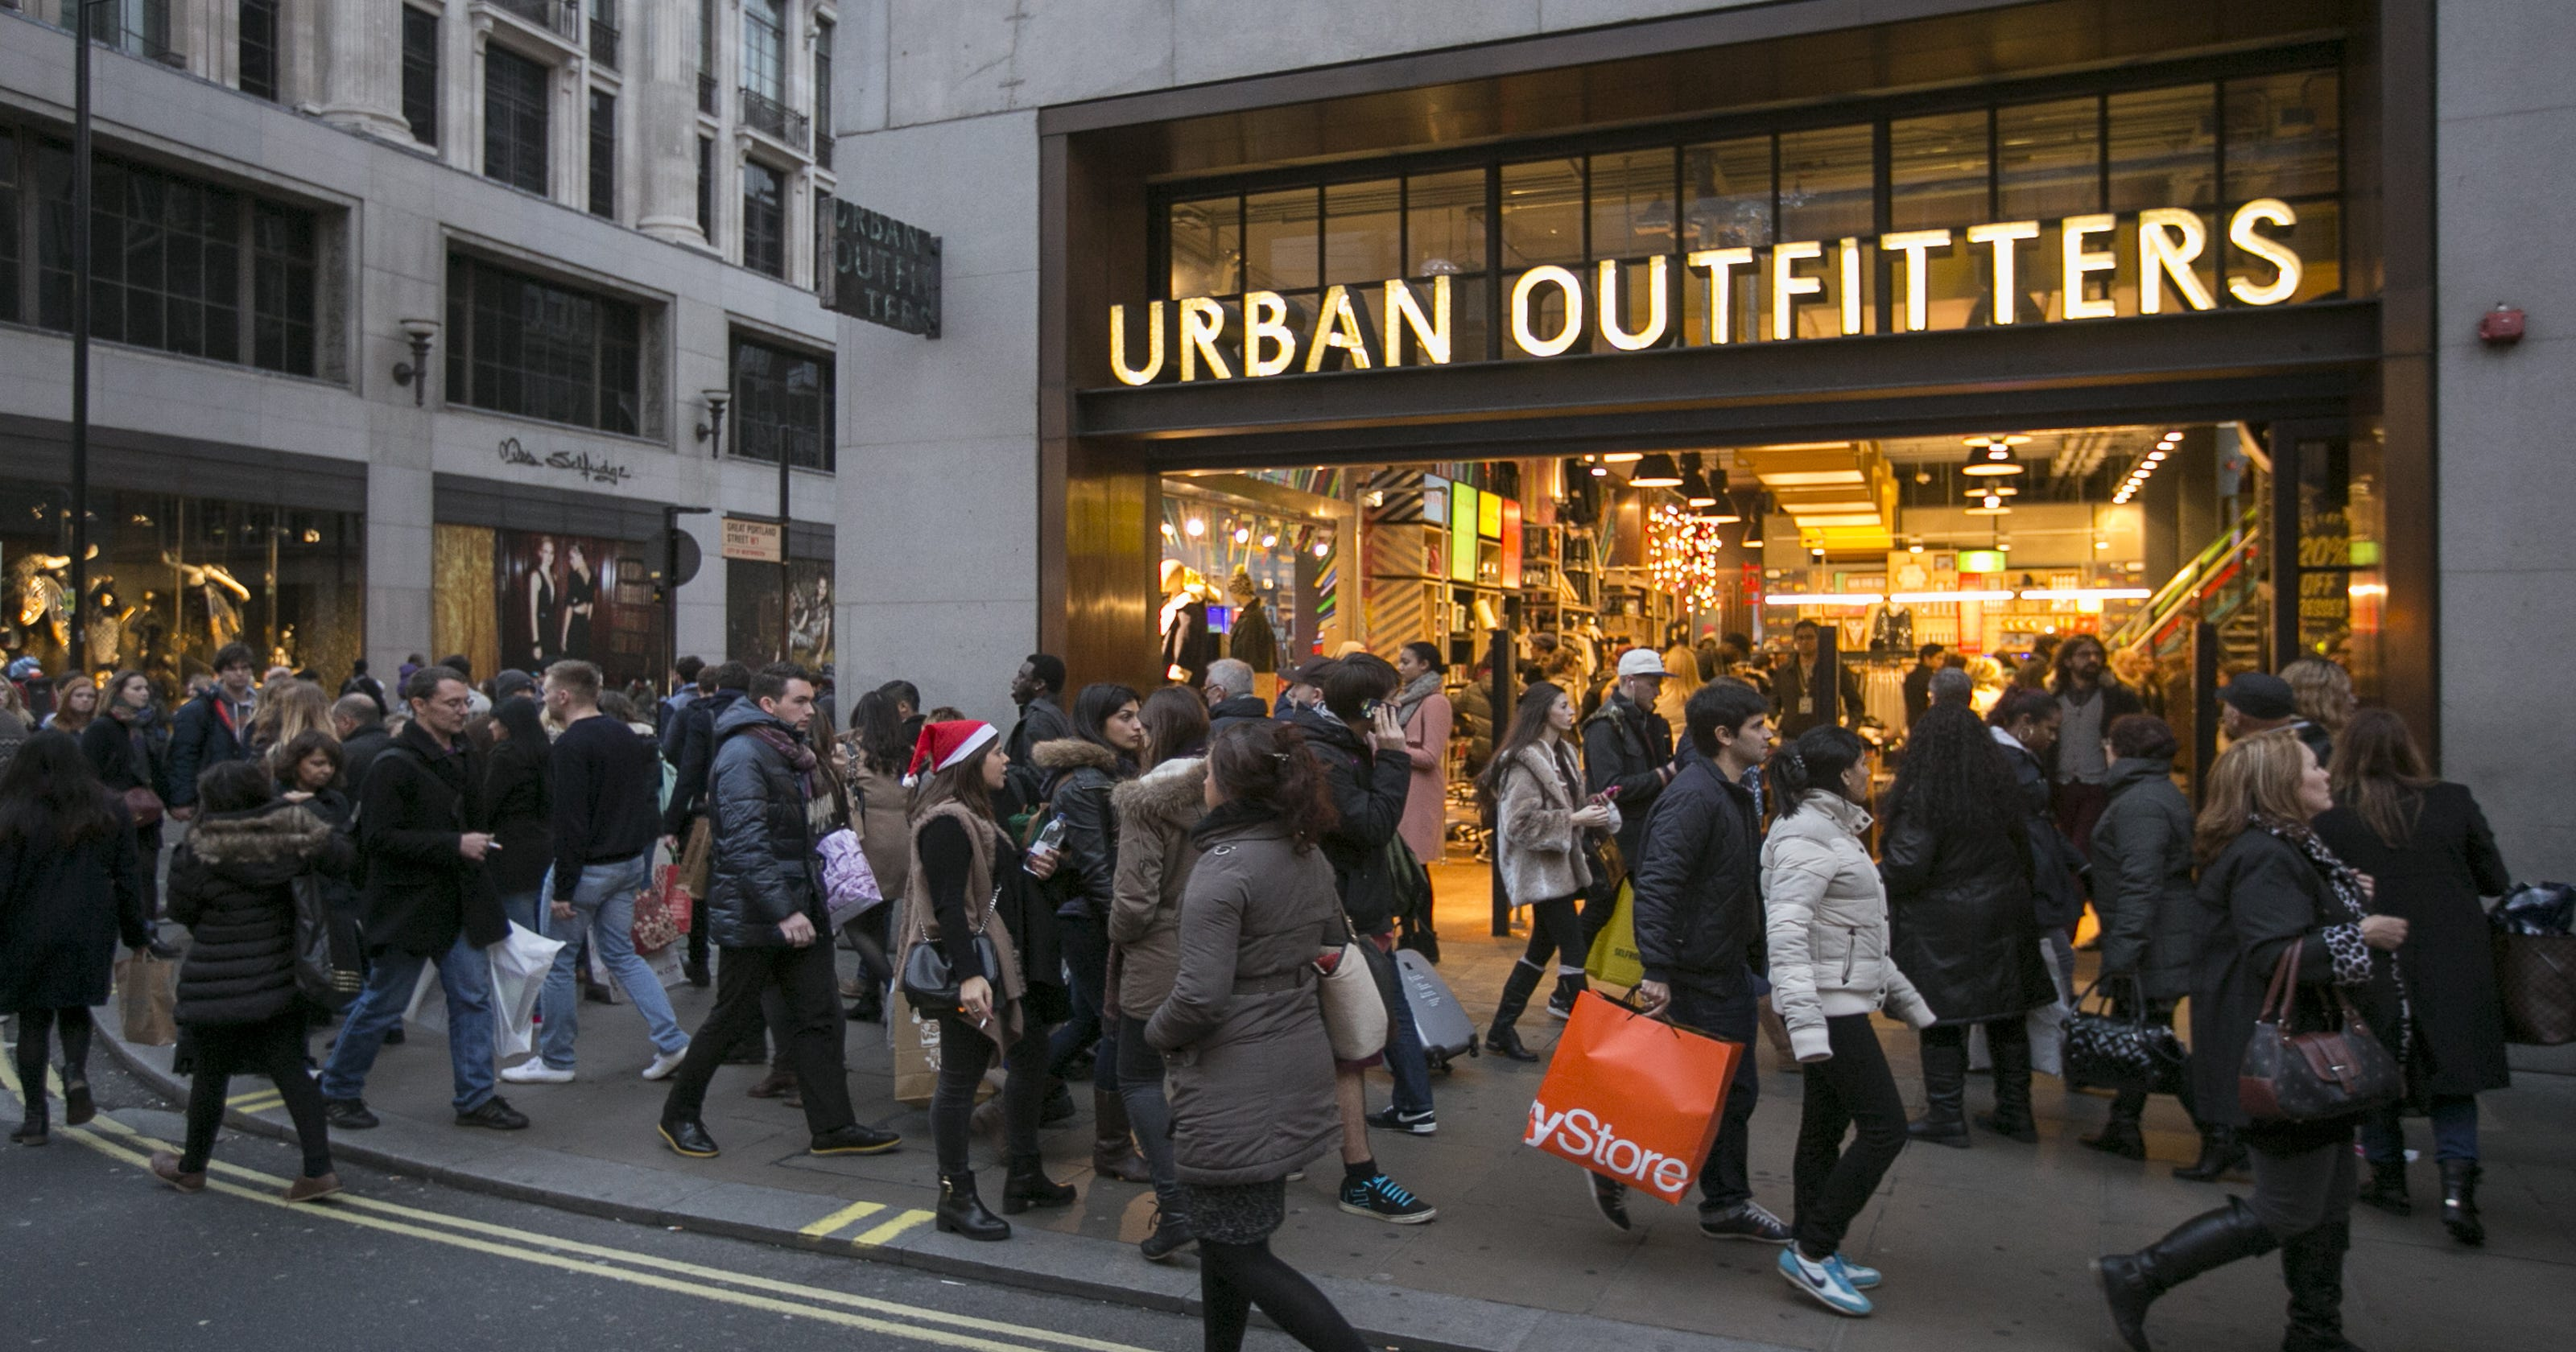 Why Is Urban Outfitters buying an Italian food chain – Urban Outfitters Business Plan